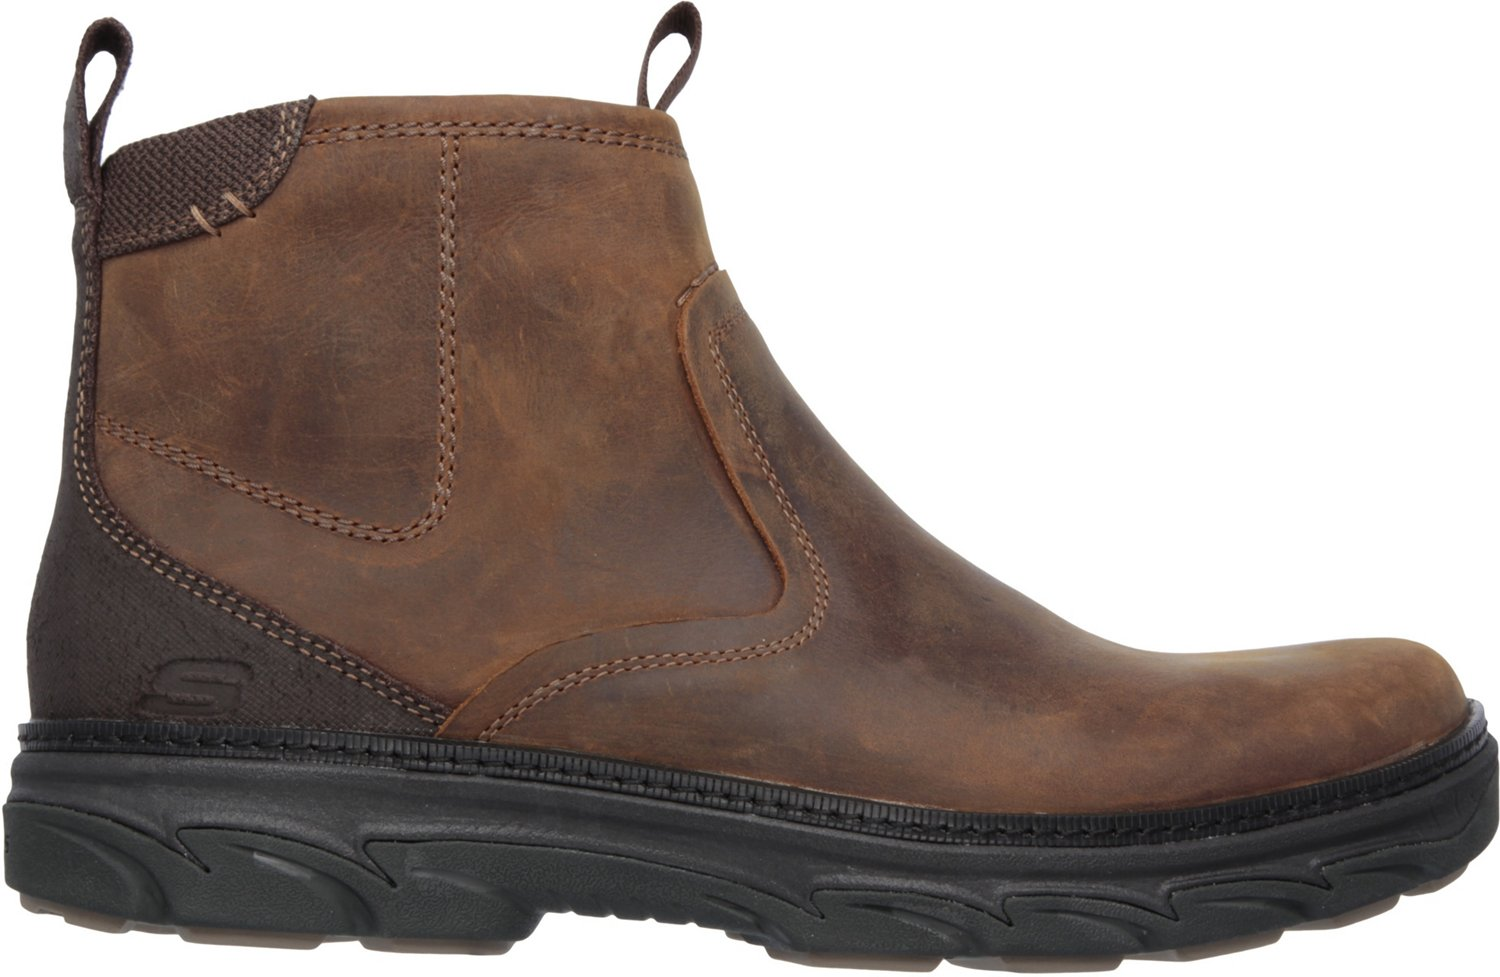 Men's Fit Skechers Boots Resment Relaxed T5lKJu31cF